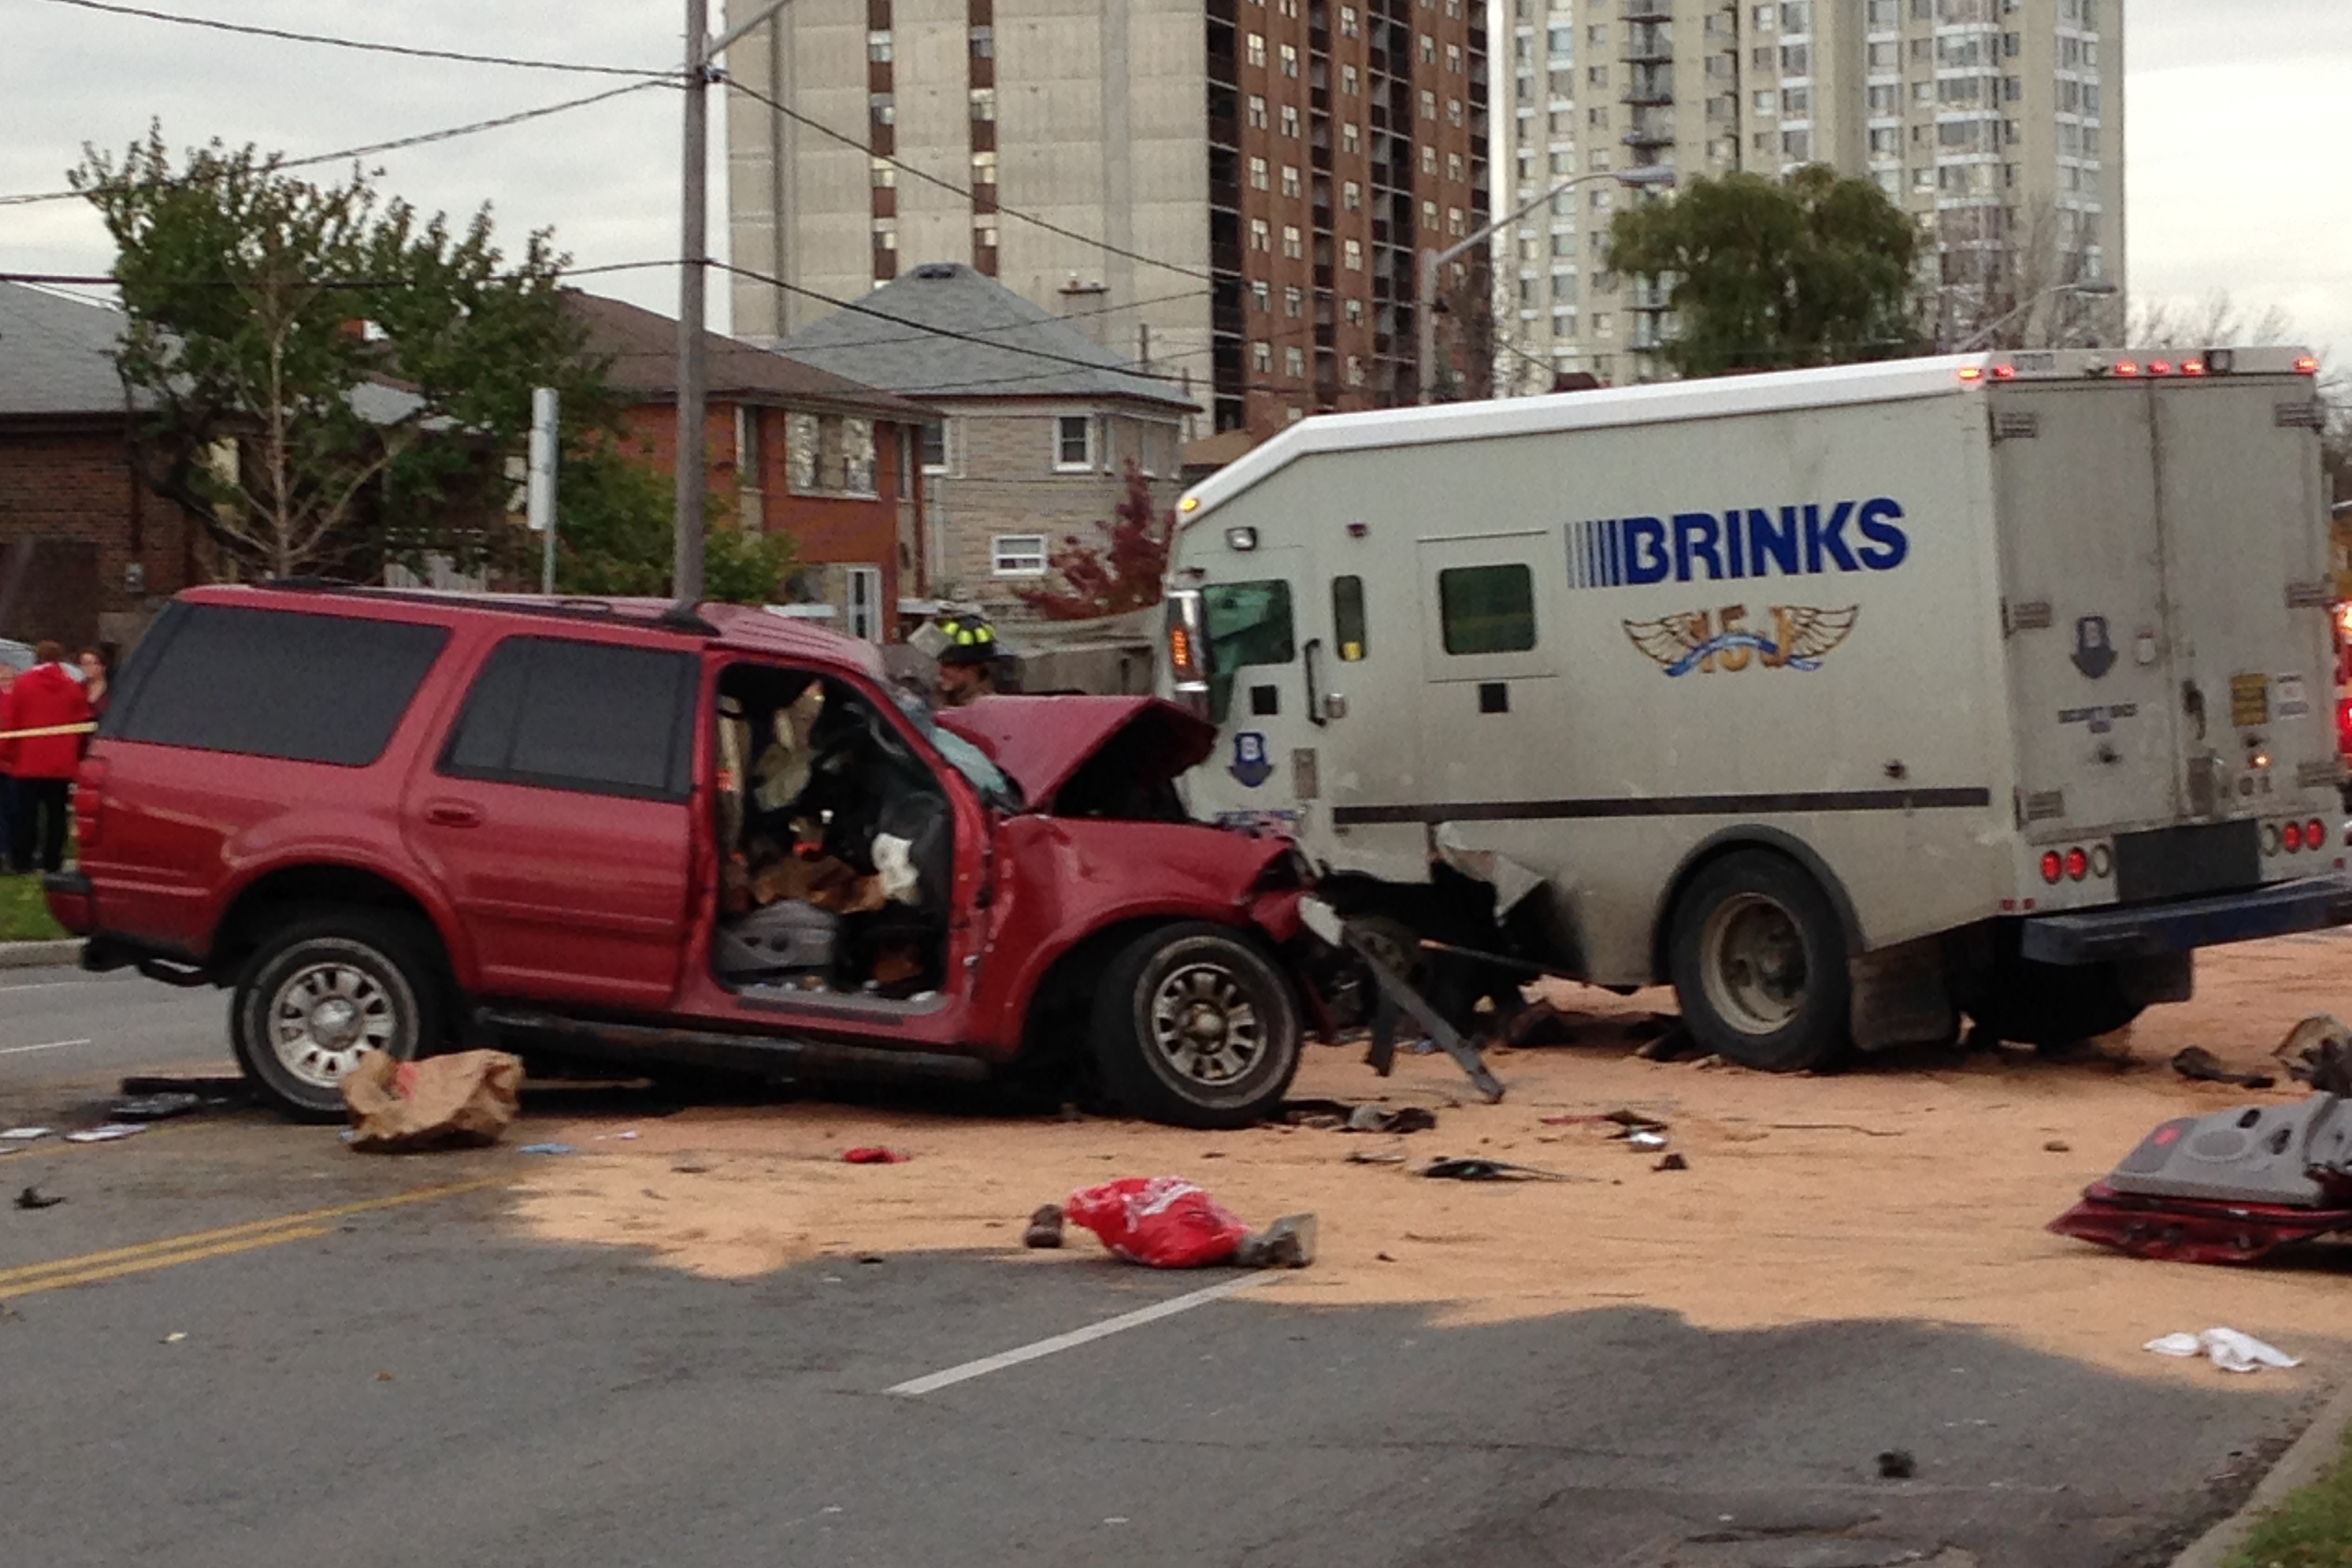 Injured In Accident Man Seriously Injured In West End Crash